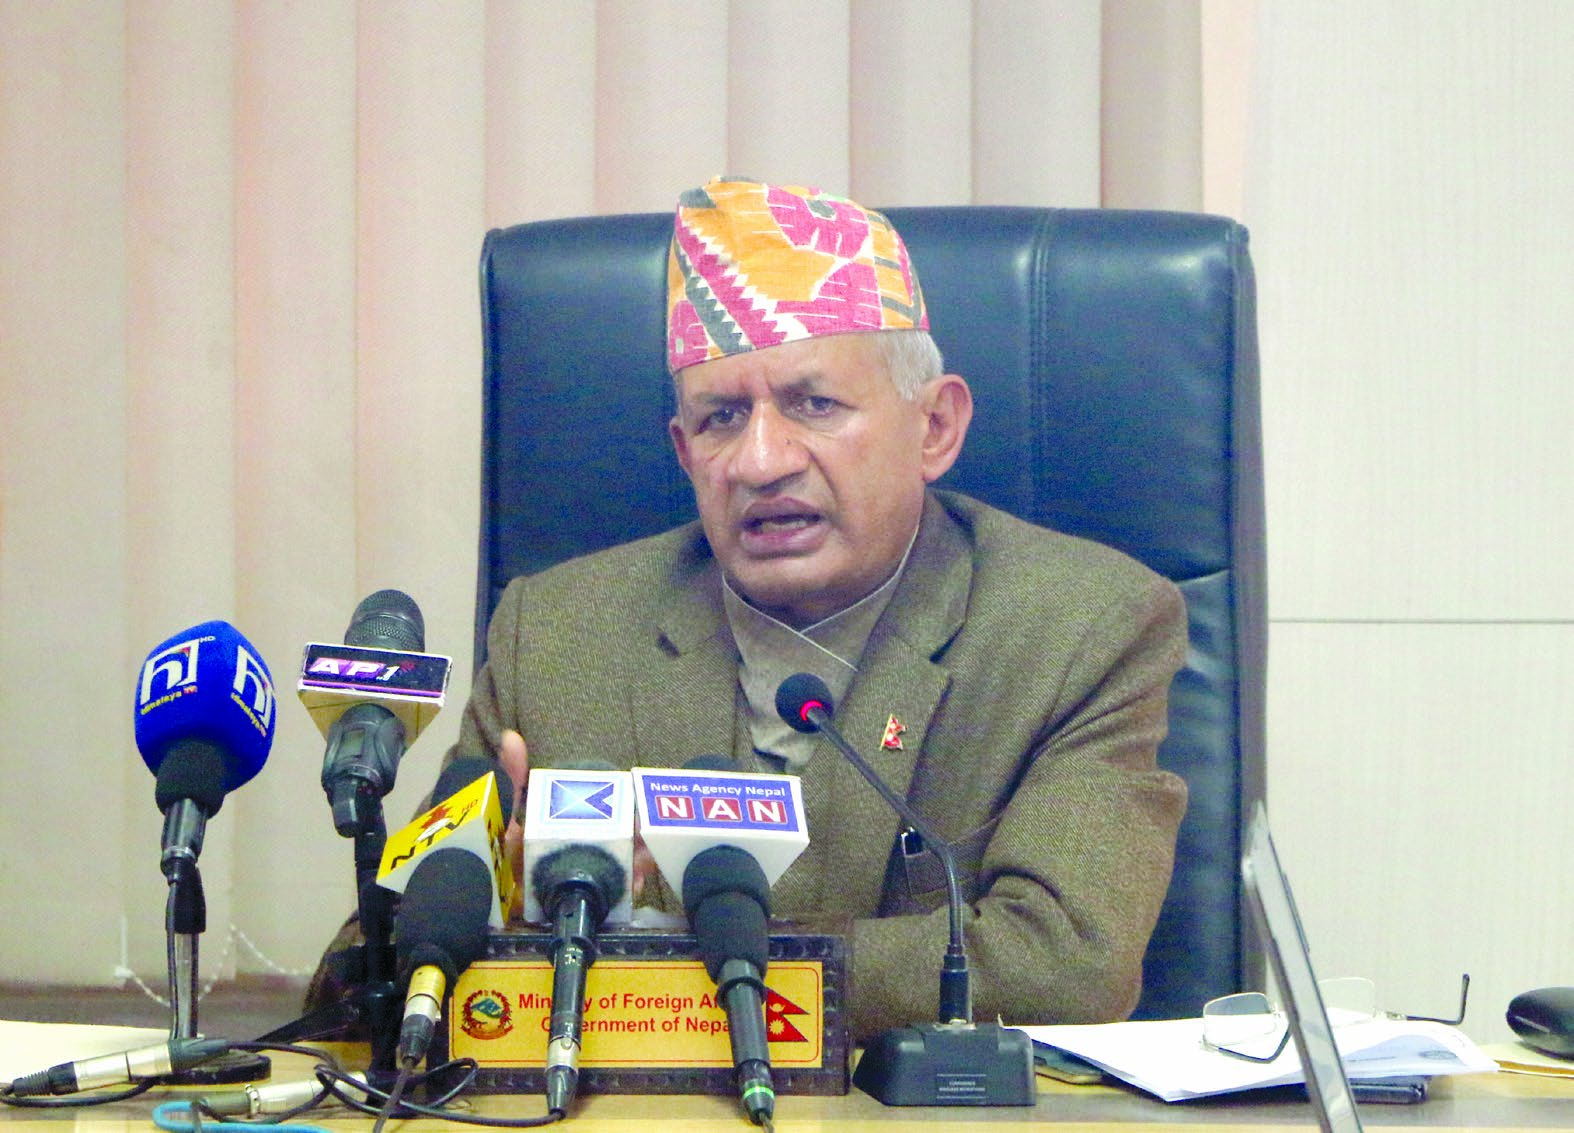 Minister of Foreign Affairs Pradeep Gyawali making public the new integrated foreign policy that was endorsed by the Cabinet on October 20, in Kathmandu, on Sunday. Photo: RSS